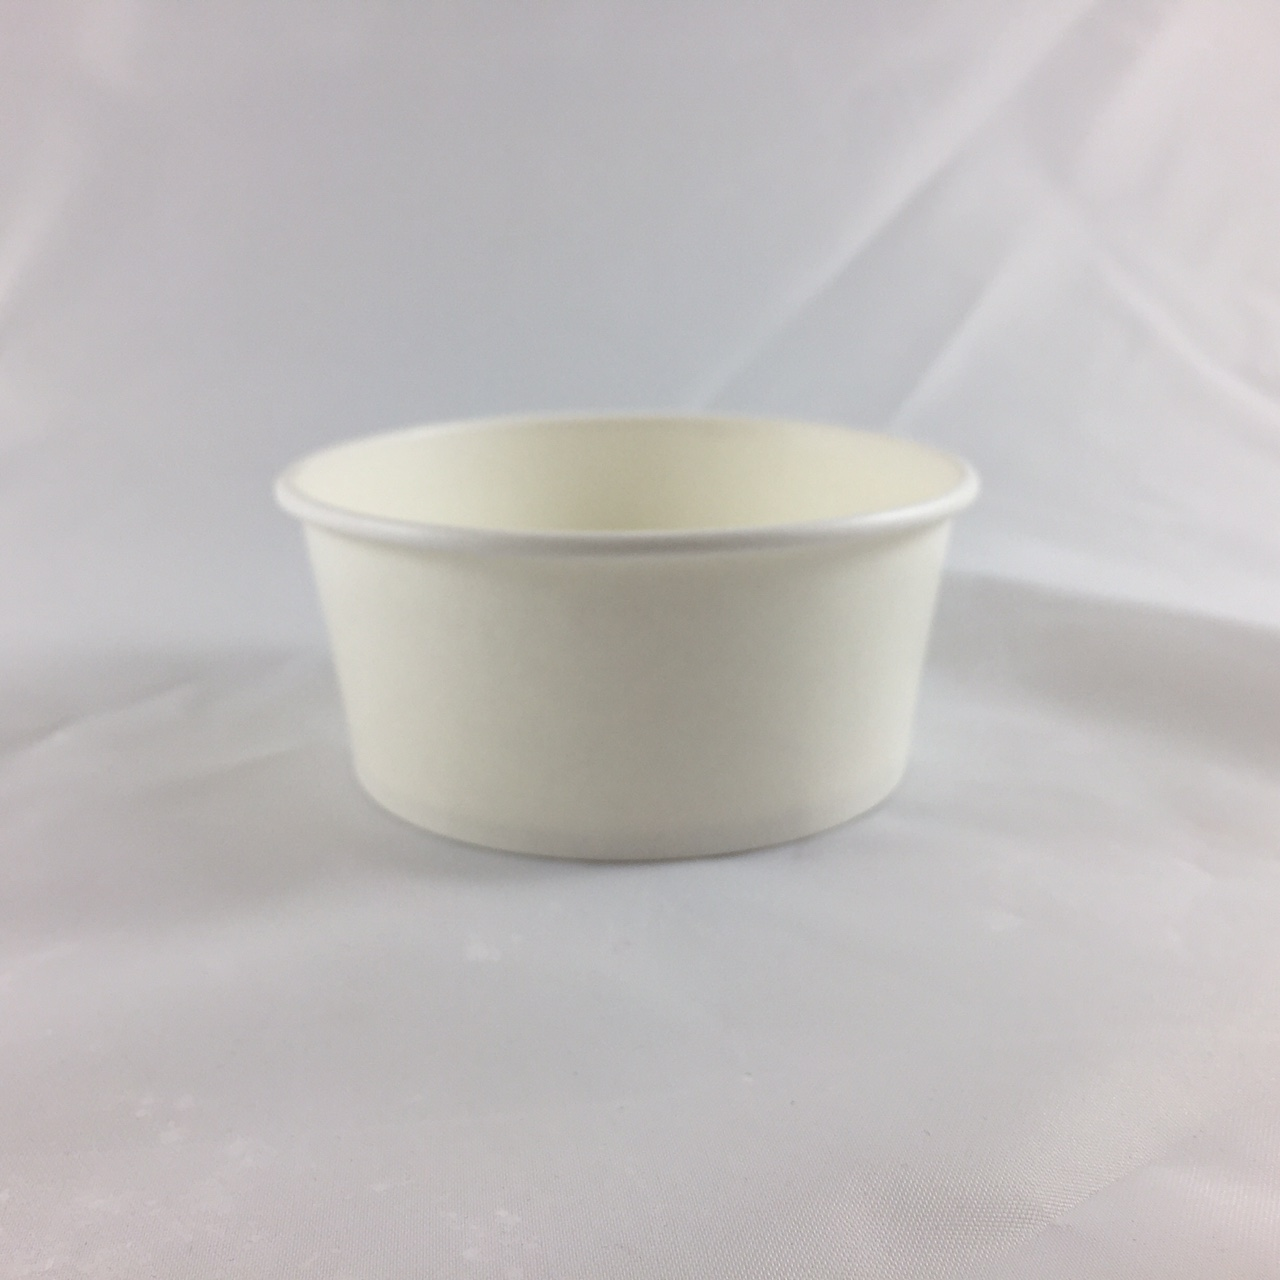 8c036212af7 FroYo and Ice Cream Cups - White - FroCup